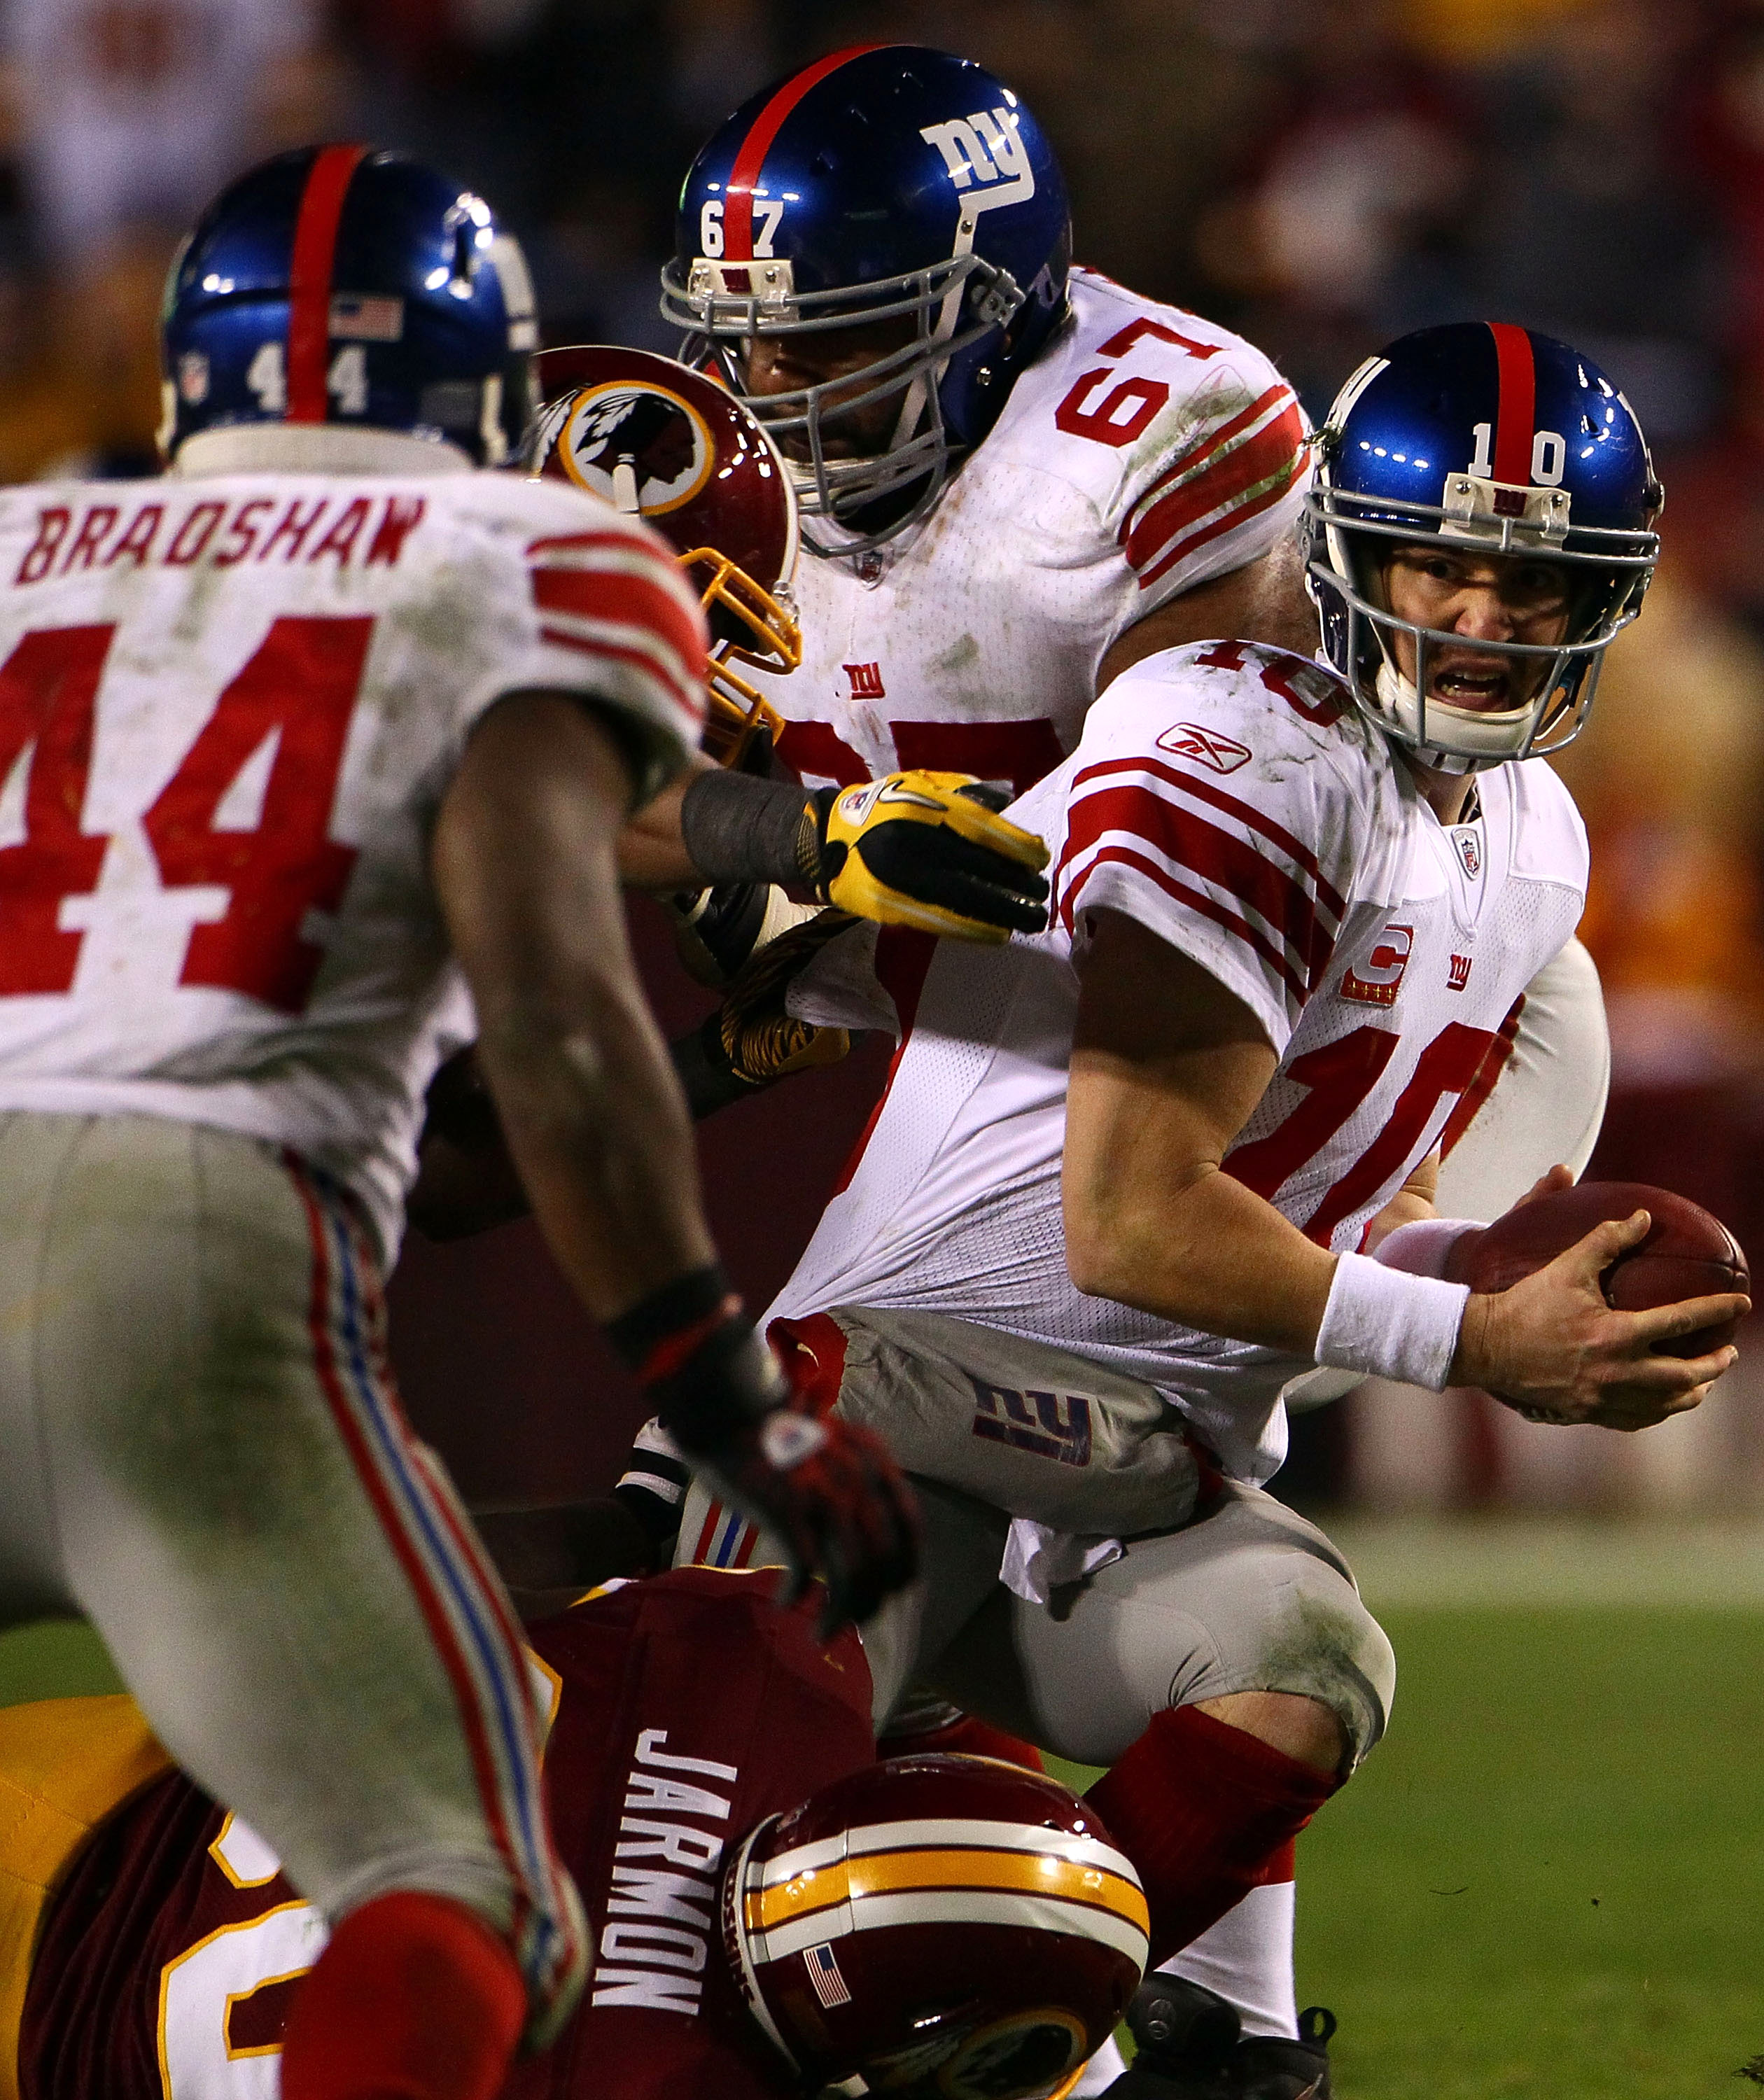 LANDOVER, MD - JANUARY 02:  Quarterback Eli Manning #10 of the New York Giants looks to Ahmad Bradshaw to lateral the ball while being pressured by the Washington Redskins defense during their game at FedEx Field on January 2, 2011 in Landover, Maryland.